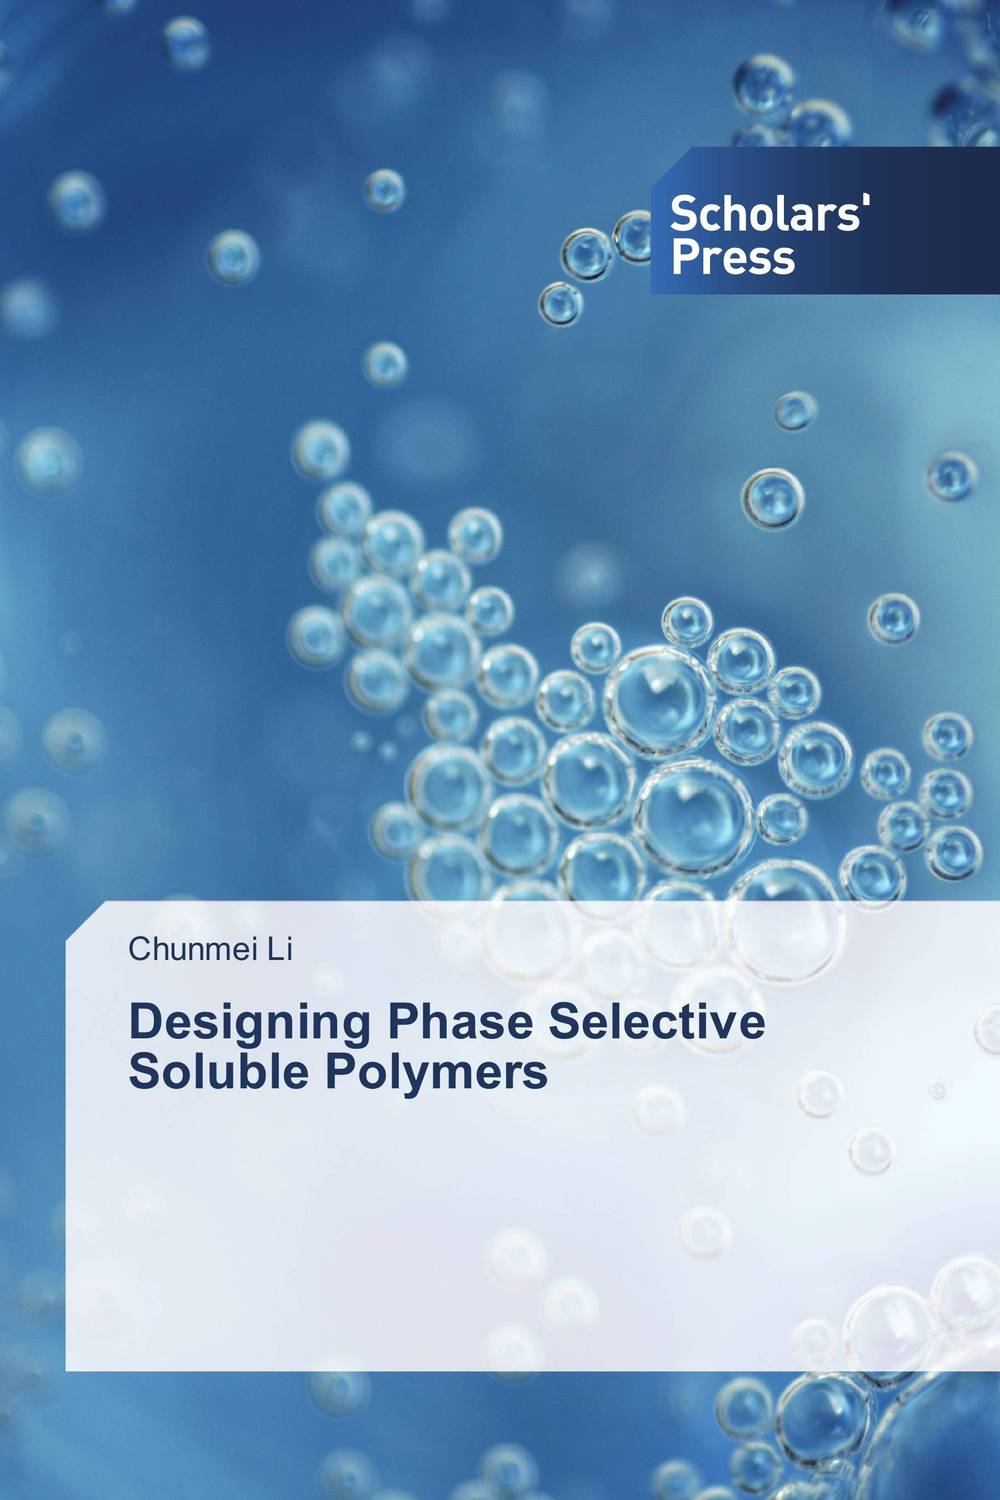 Designing Phase Selective Soluble Polymers fda 489 replaceable core filter driers are designed to be used in the liquid and suction lines of air conditioning systems